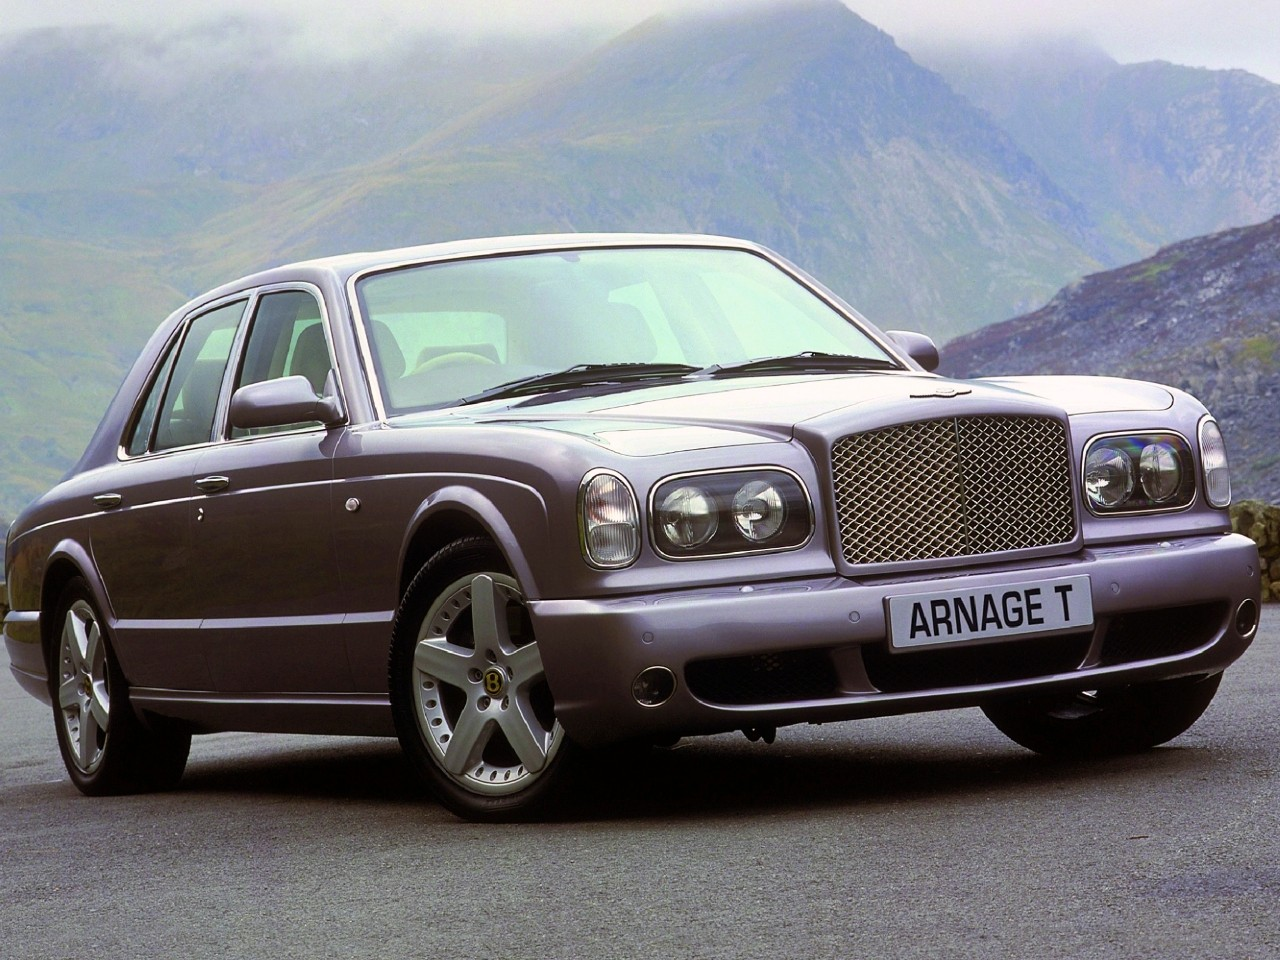 acura york road html with Bentley Arnage T 2002 on Bentley Arnage T 2002 also Photo 00 further Raytheon M1102 Military Surplus Cargo Trailer 252584509276 further 52454025 13 moreover Jeep Patriot Vs Ford Escape.